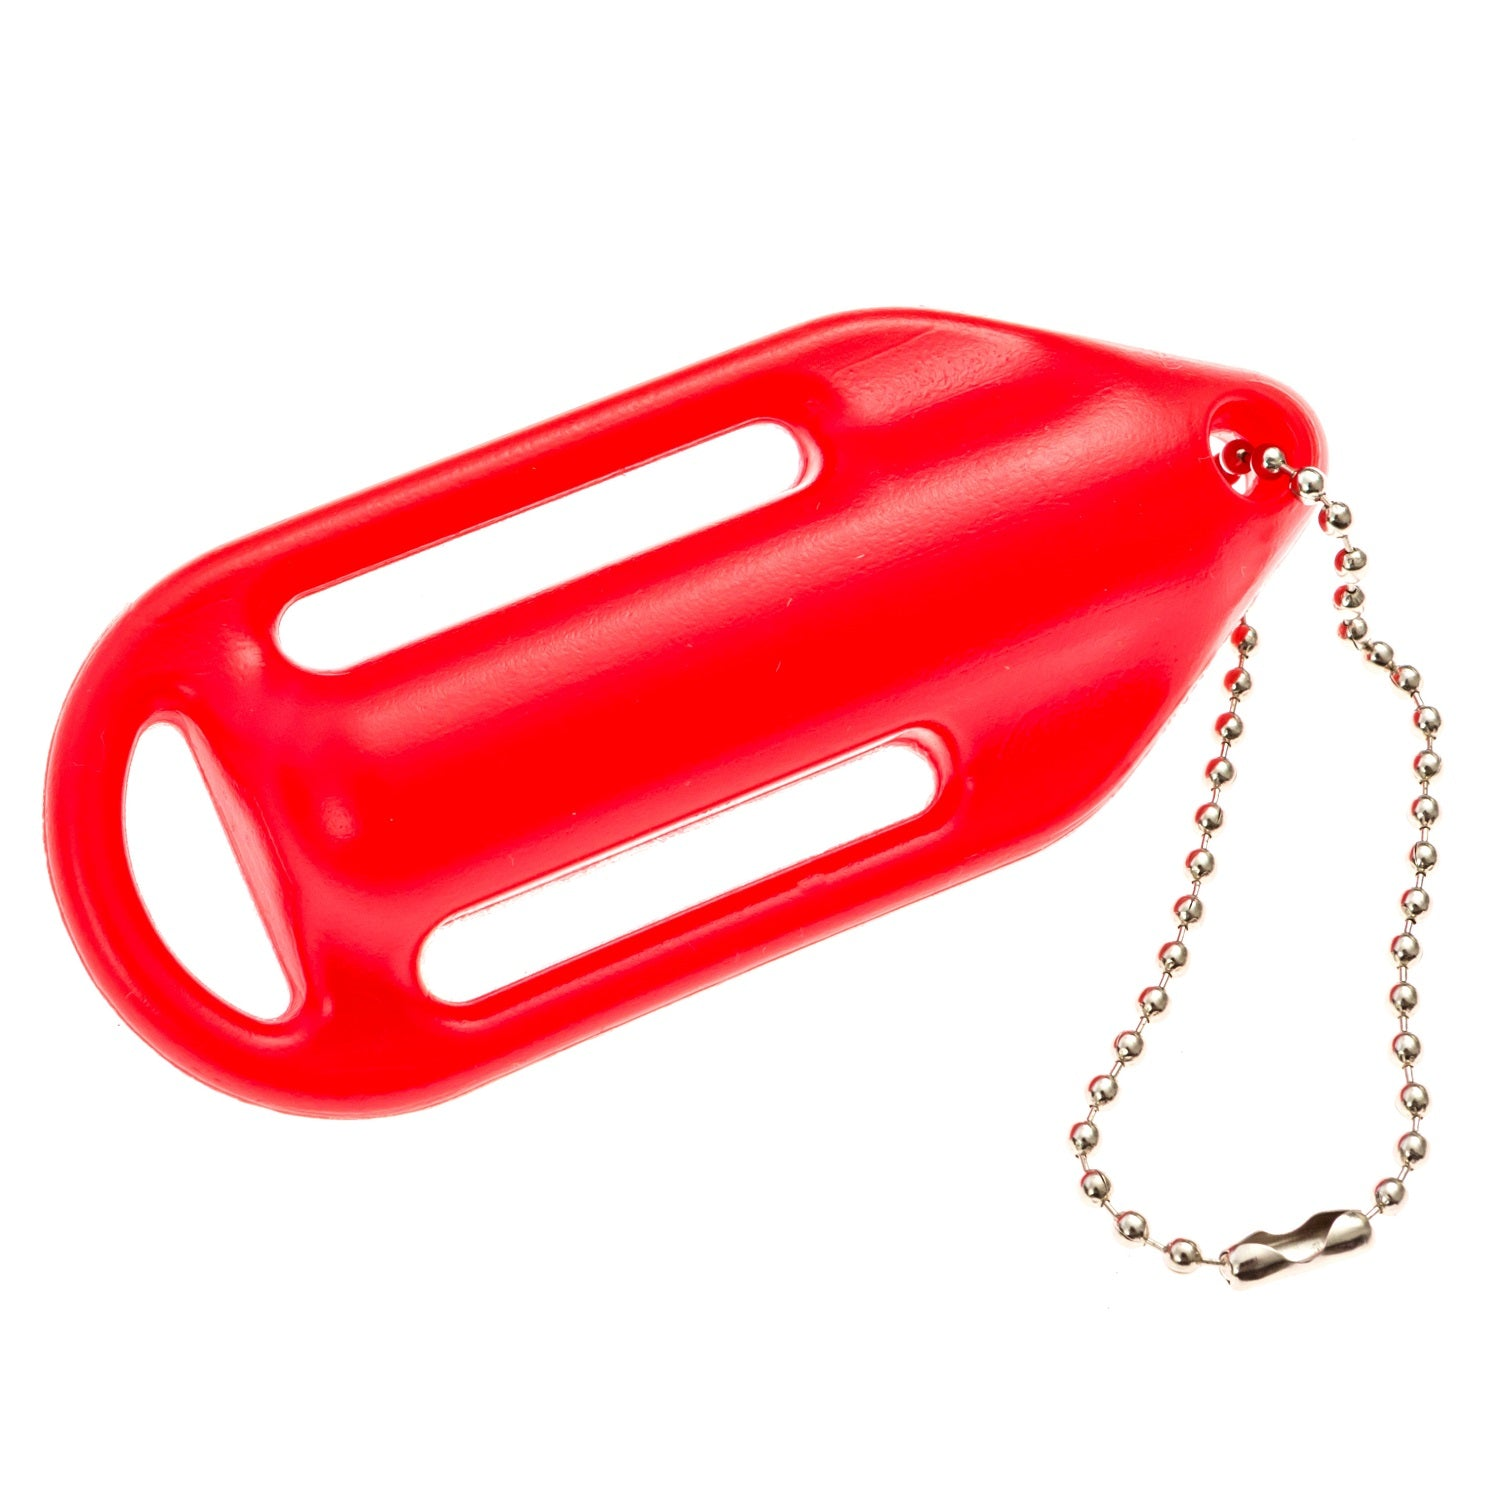 Lifeguard Rescue Can Keychain - BLARIX